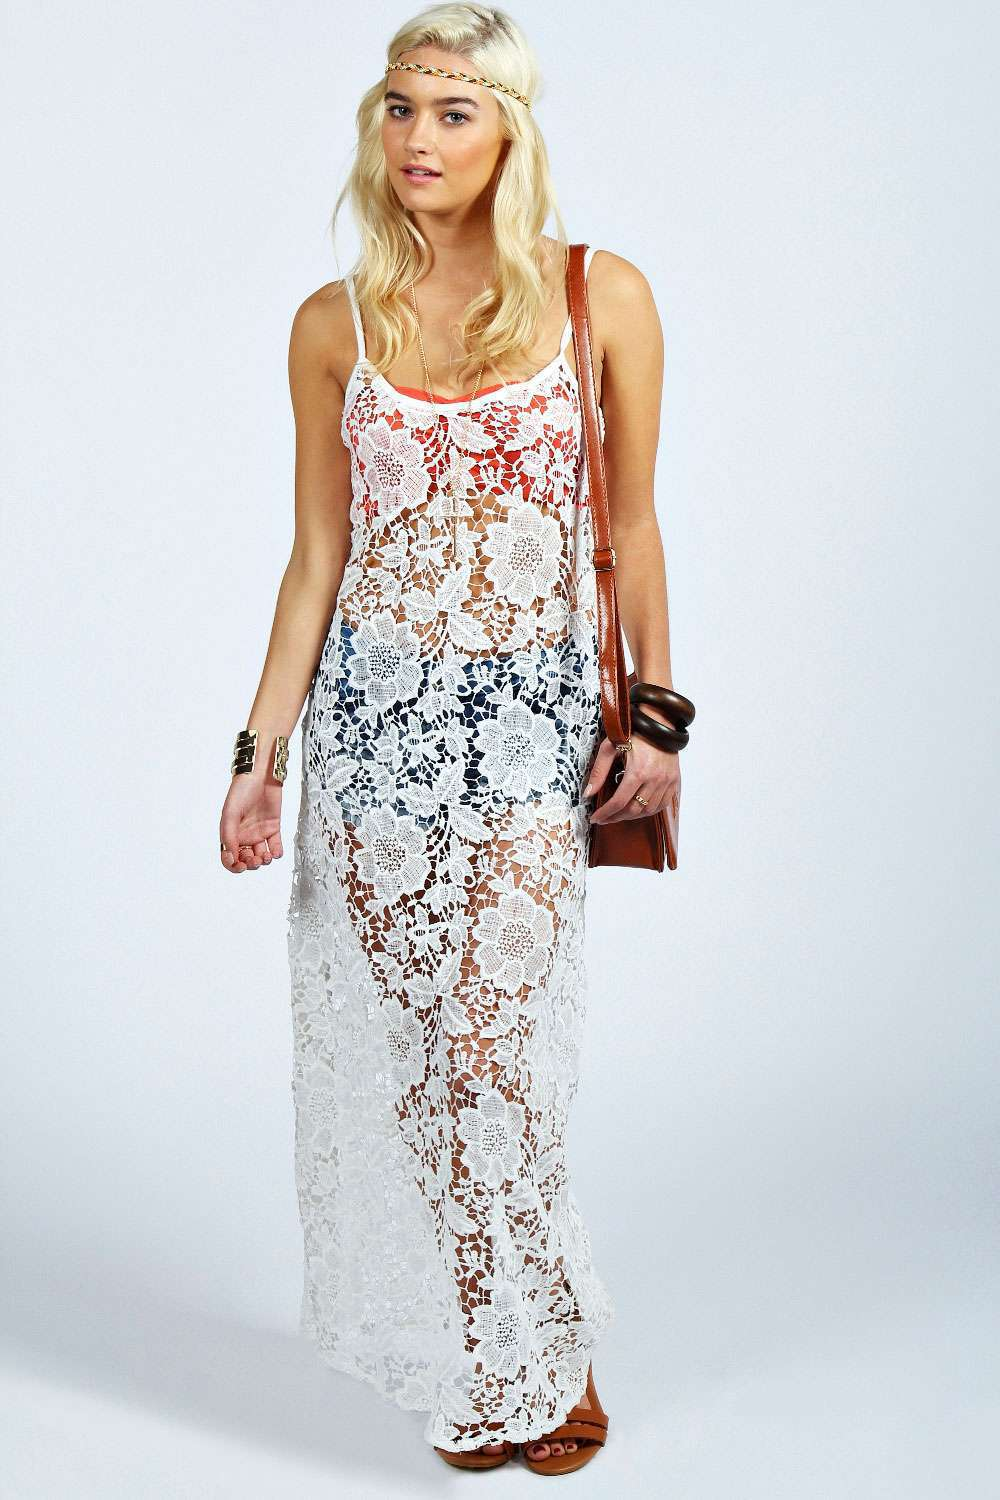 435533a806 NEW arrival! womens beach cover up dresses Sexy White Lace Summer Beach  Maxi Kaftan Tunic Dress plus size Swim Suit Cover Ups